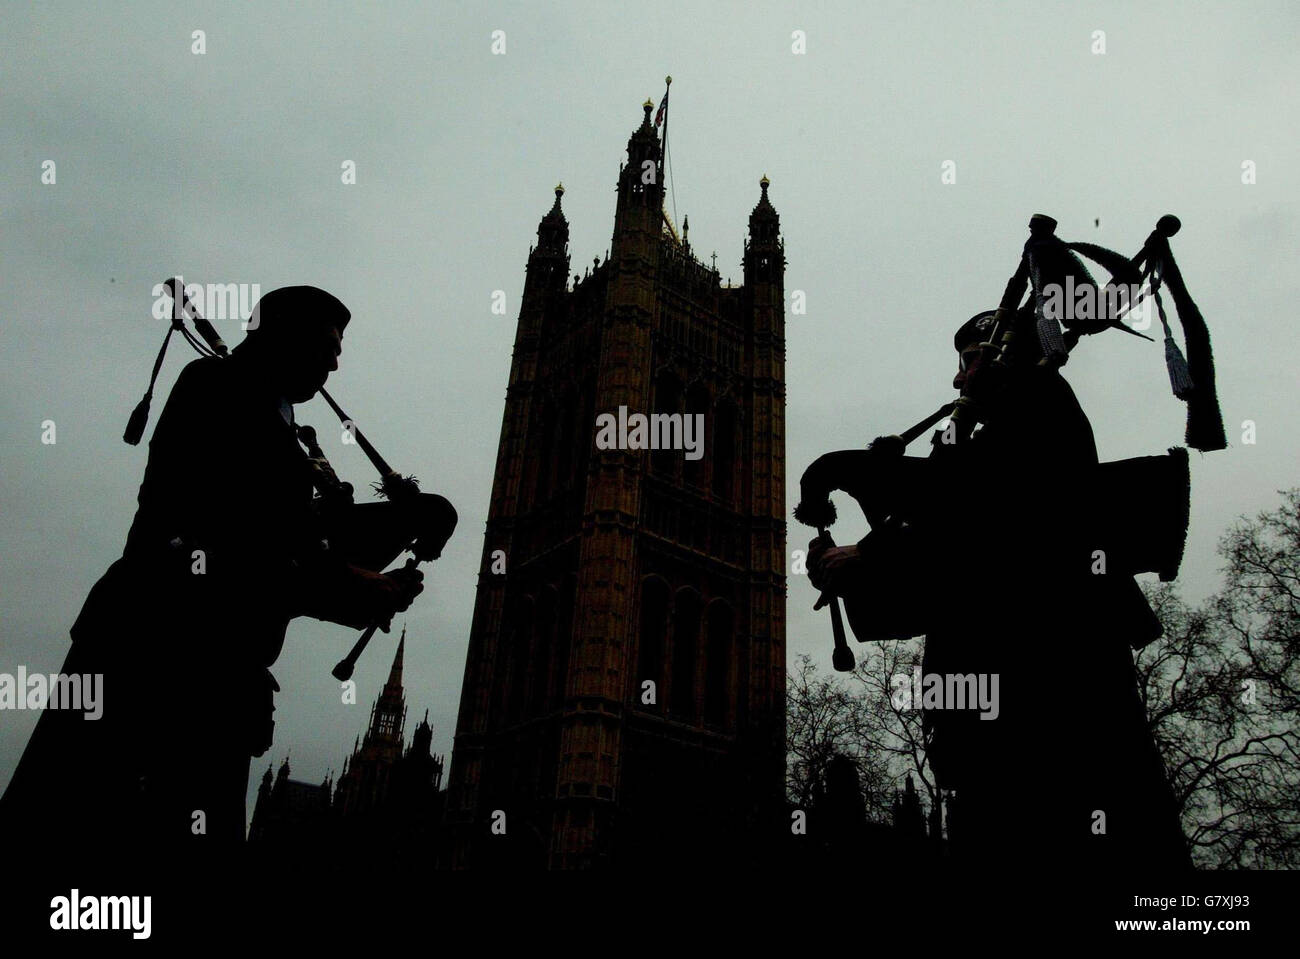 Save The Scottish Regiments candidate unveiled - Palace of Westminster - Stock Image